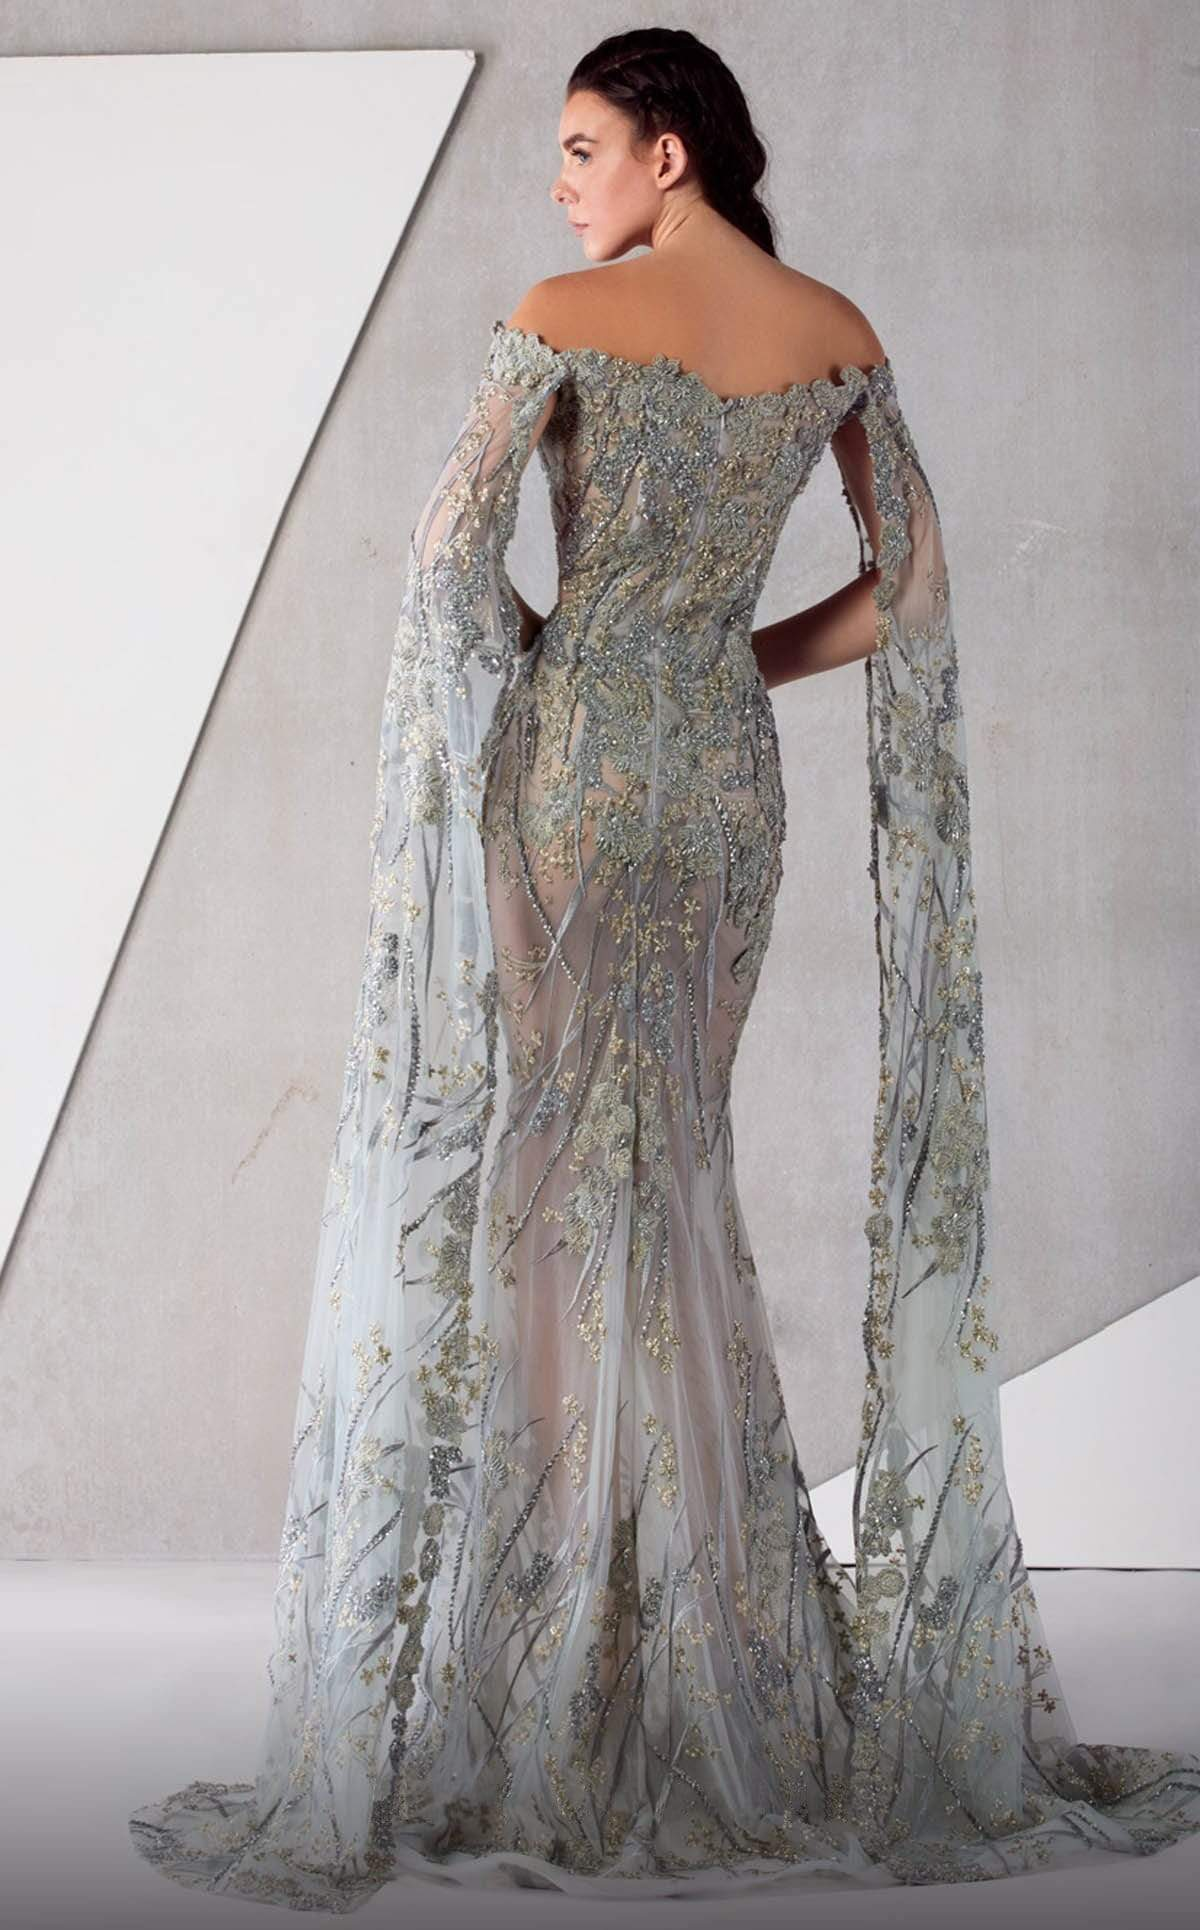 MNM COUTURE - K3763 Embroidered Off-Shoulder Trumpet Dress In Gray and Silver